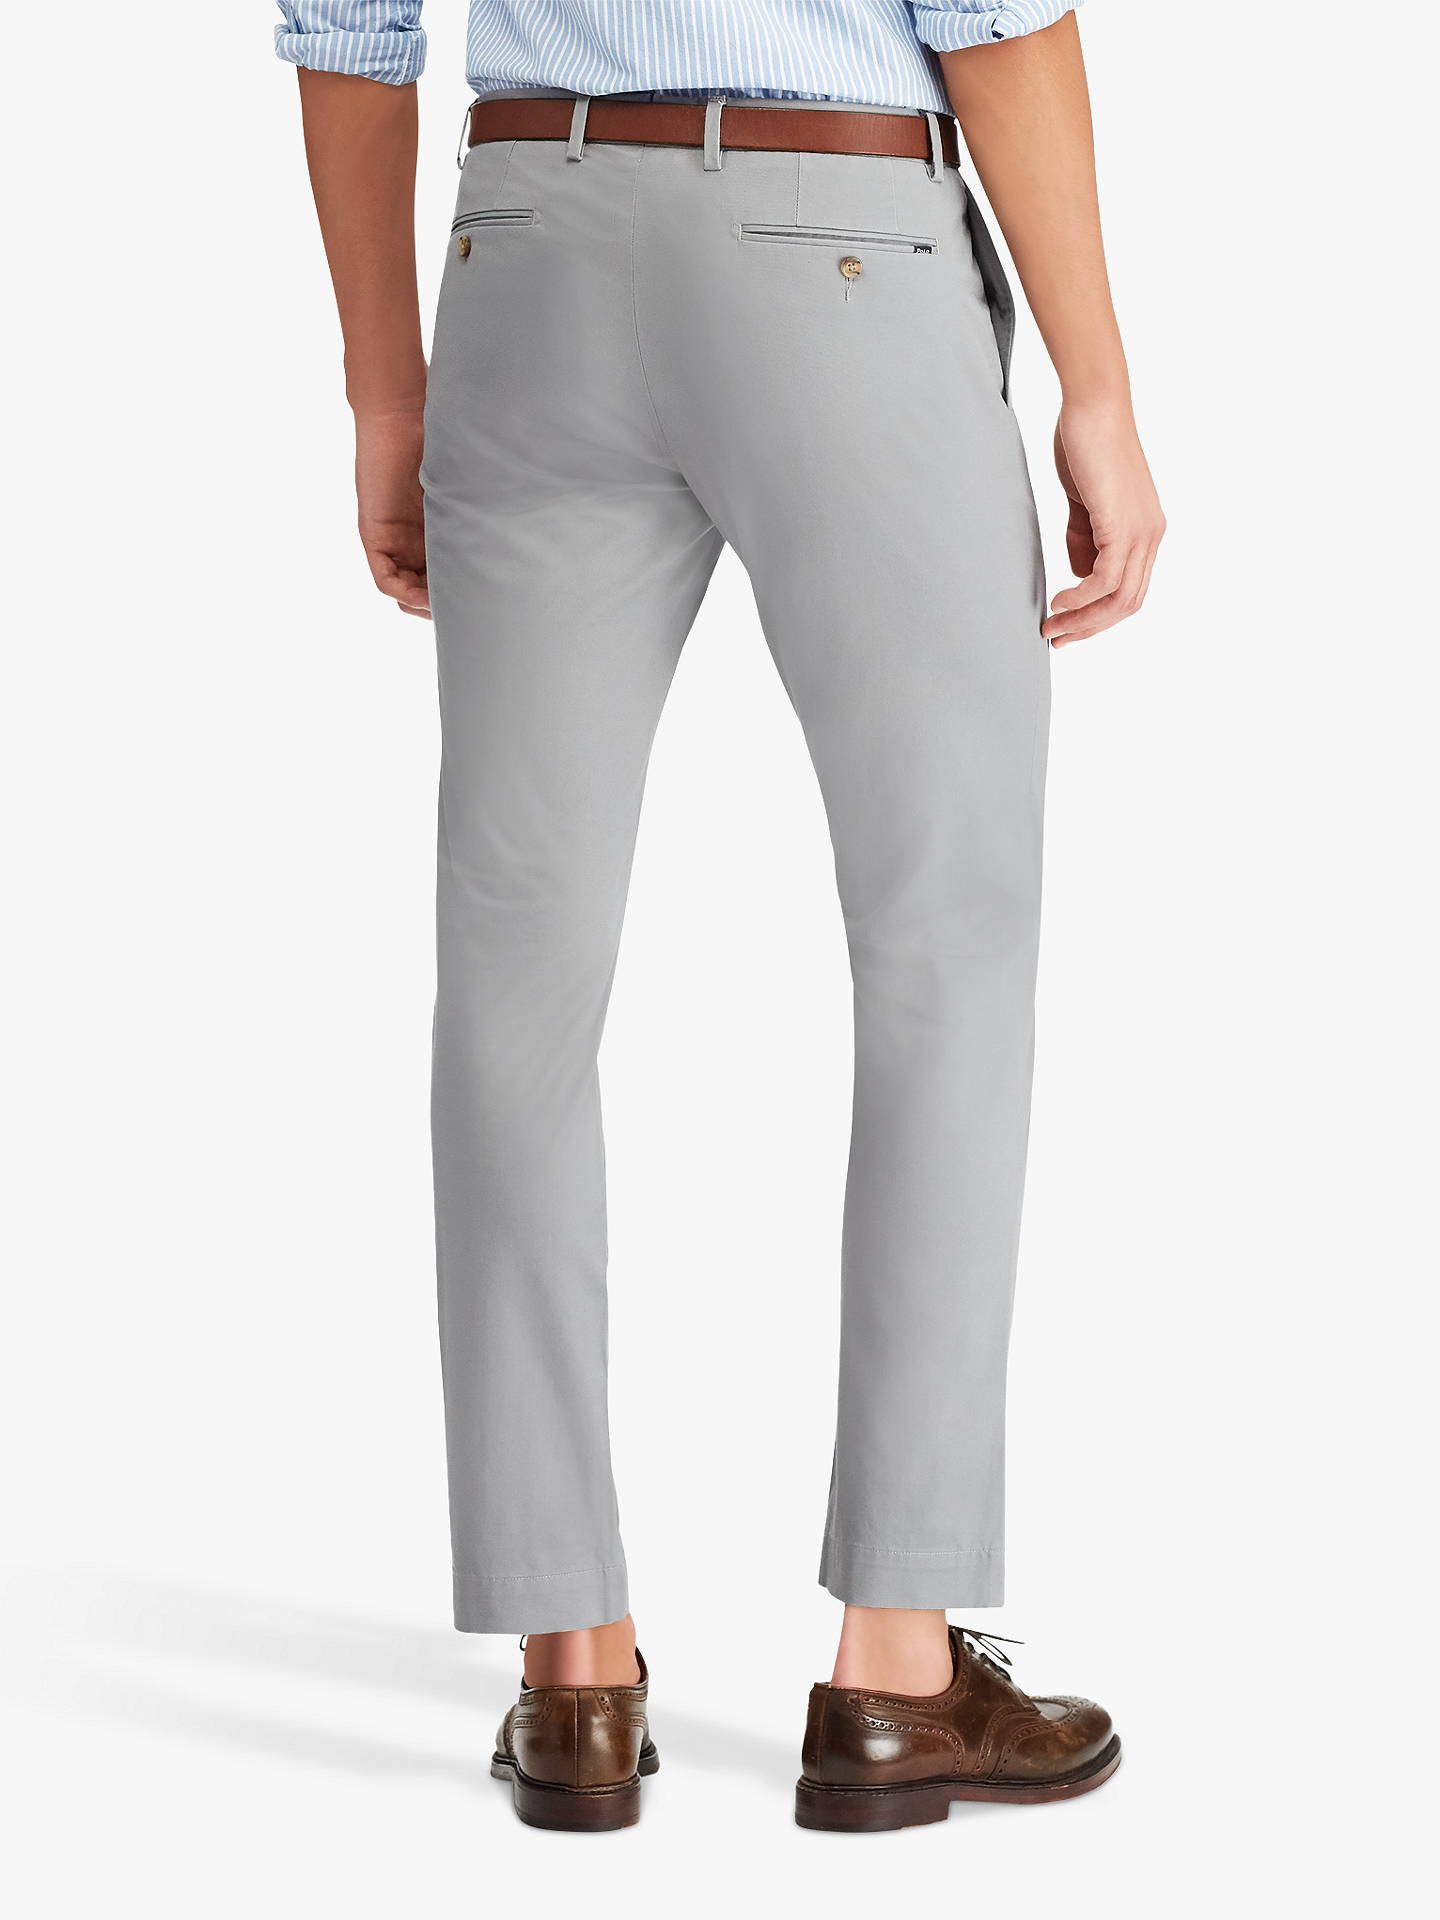 2018 sneakers exquisite design good out x Polo Ralph Lauren Flat Pant Slim Chino, Museum Grey at John ...